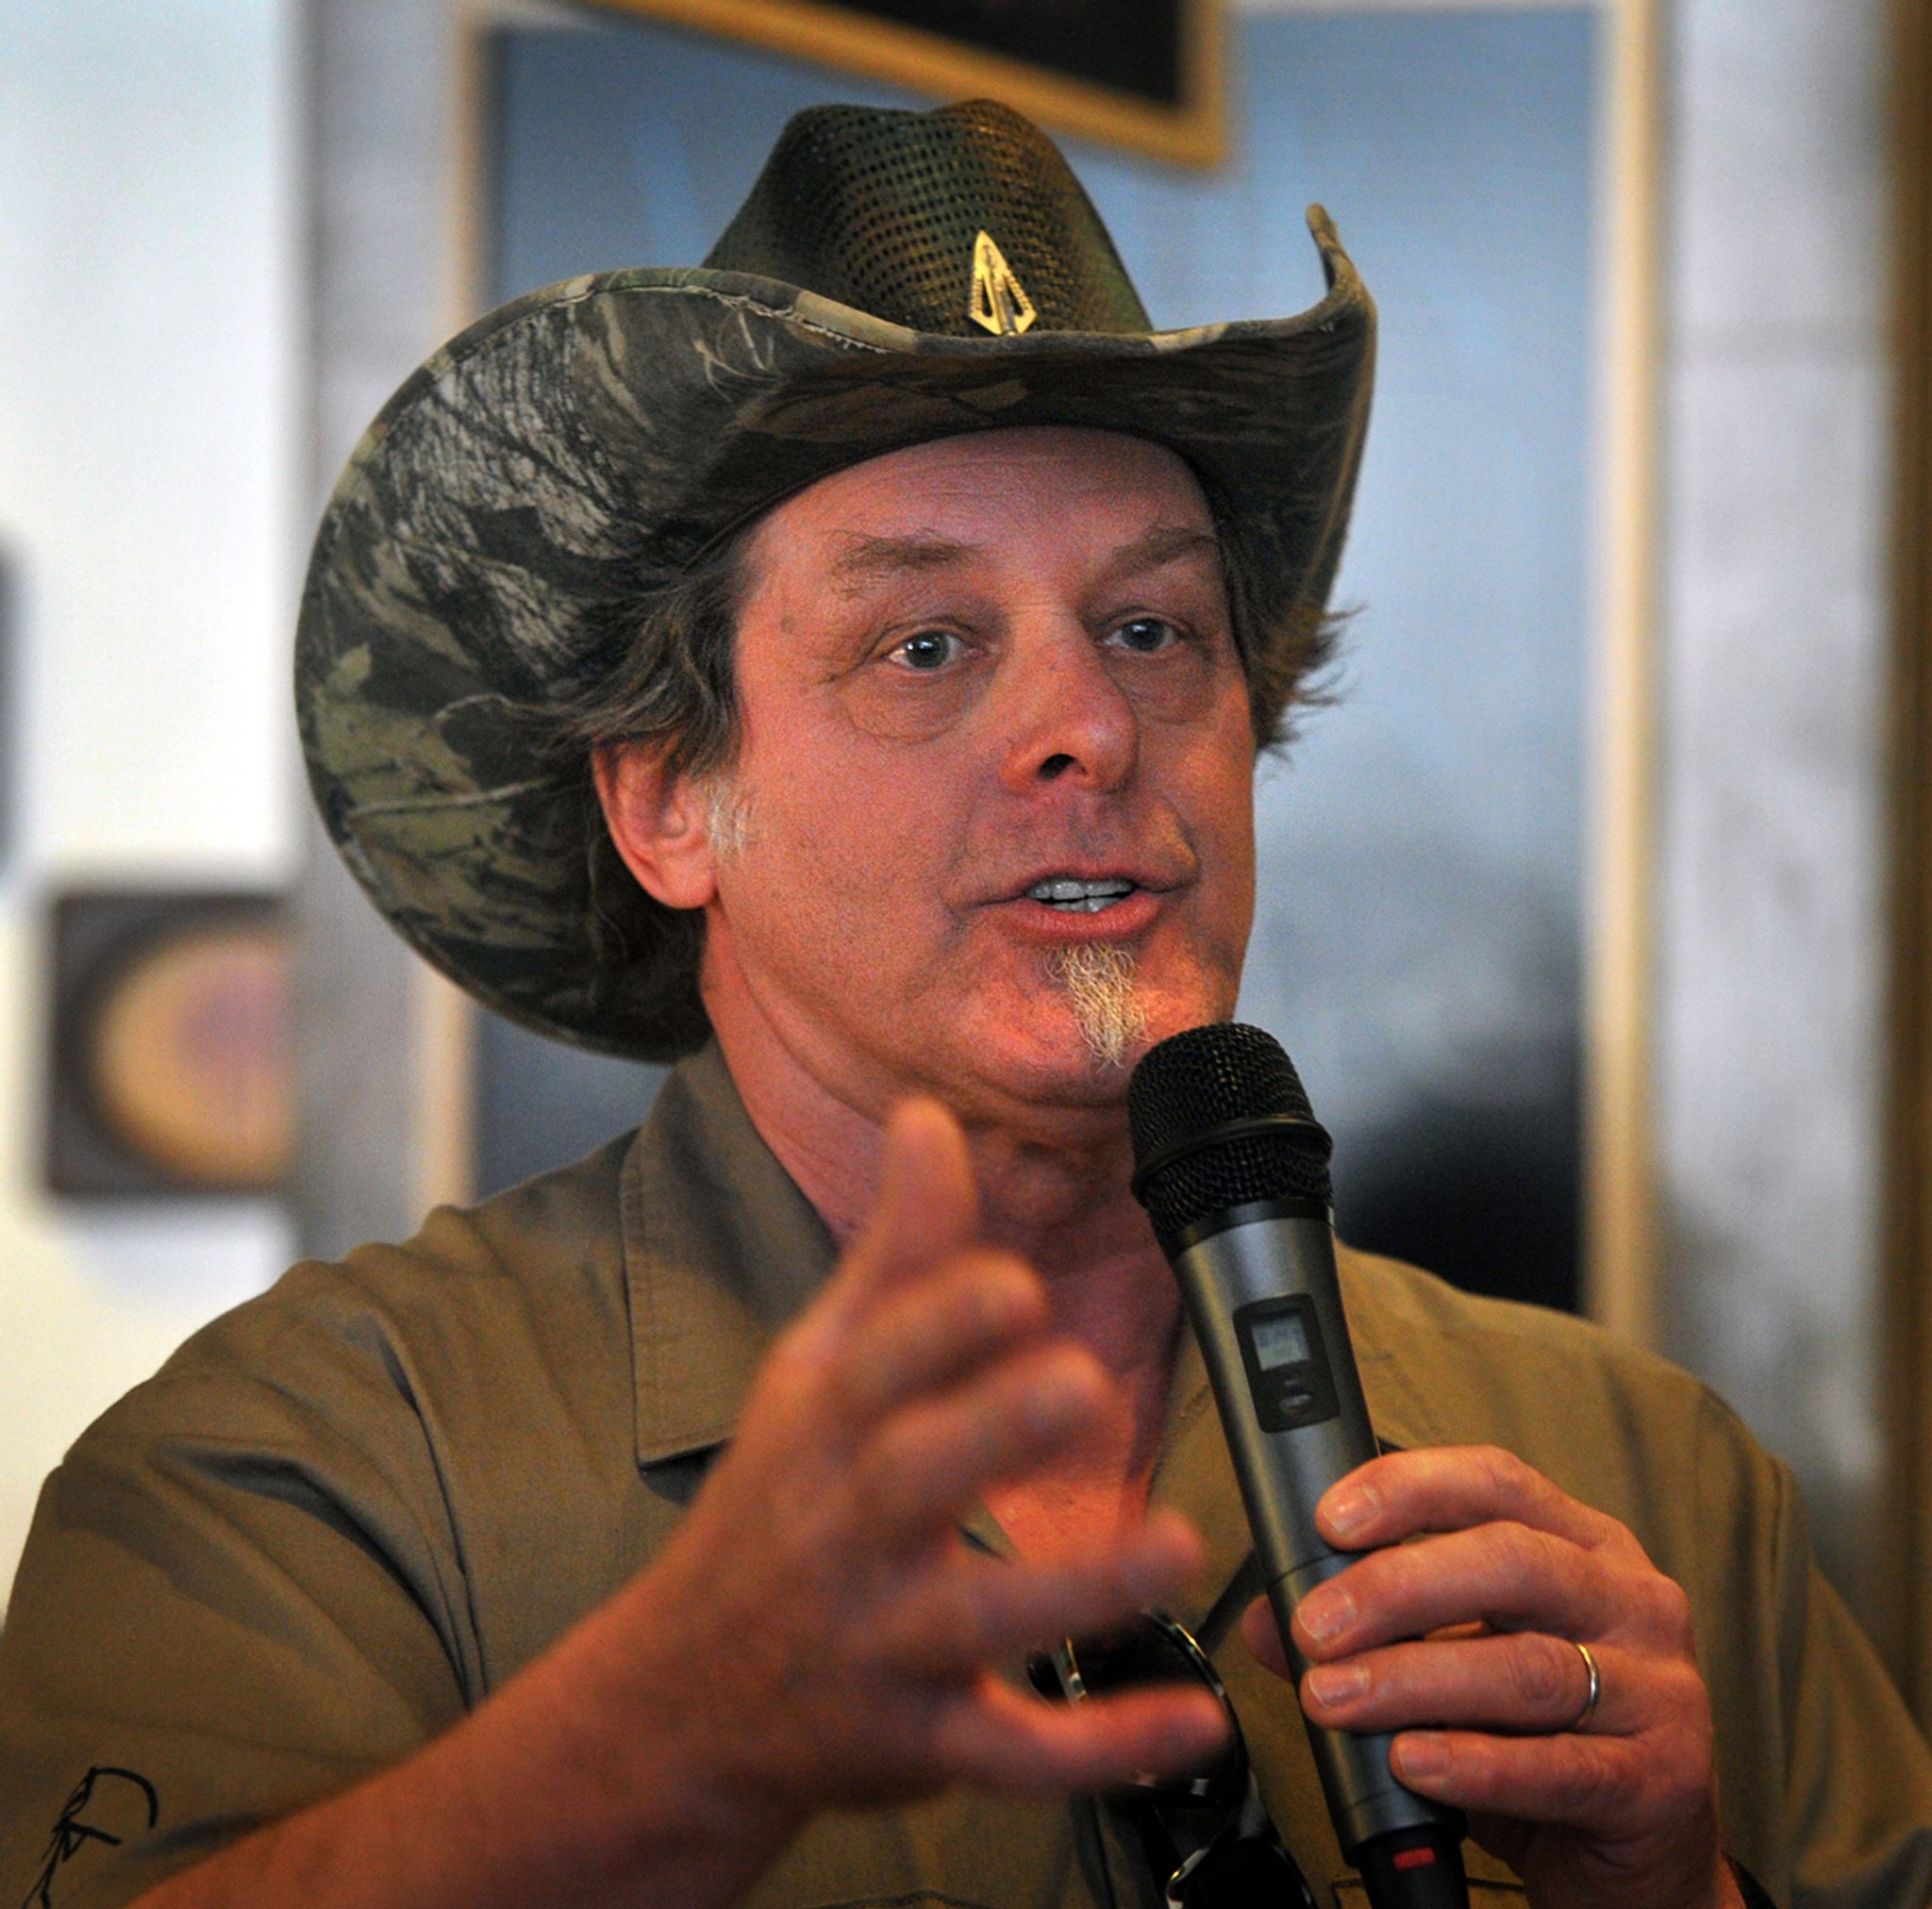 The racist image posted to Ted Nugent's Facebook.